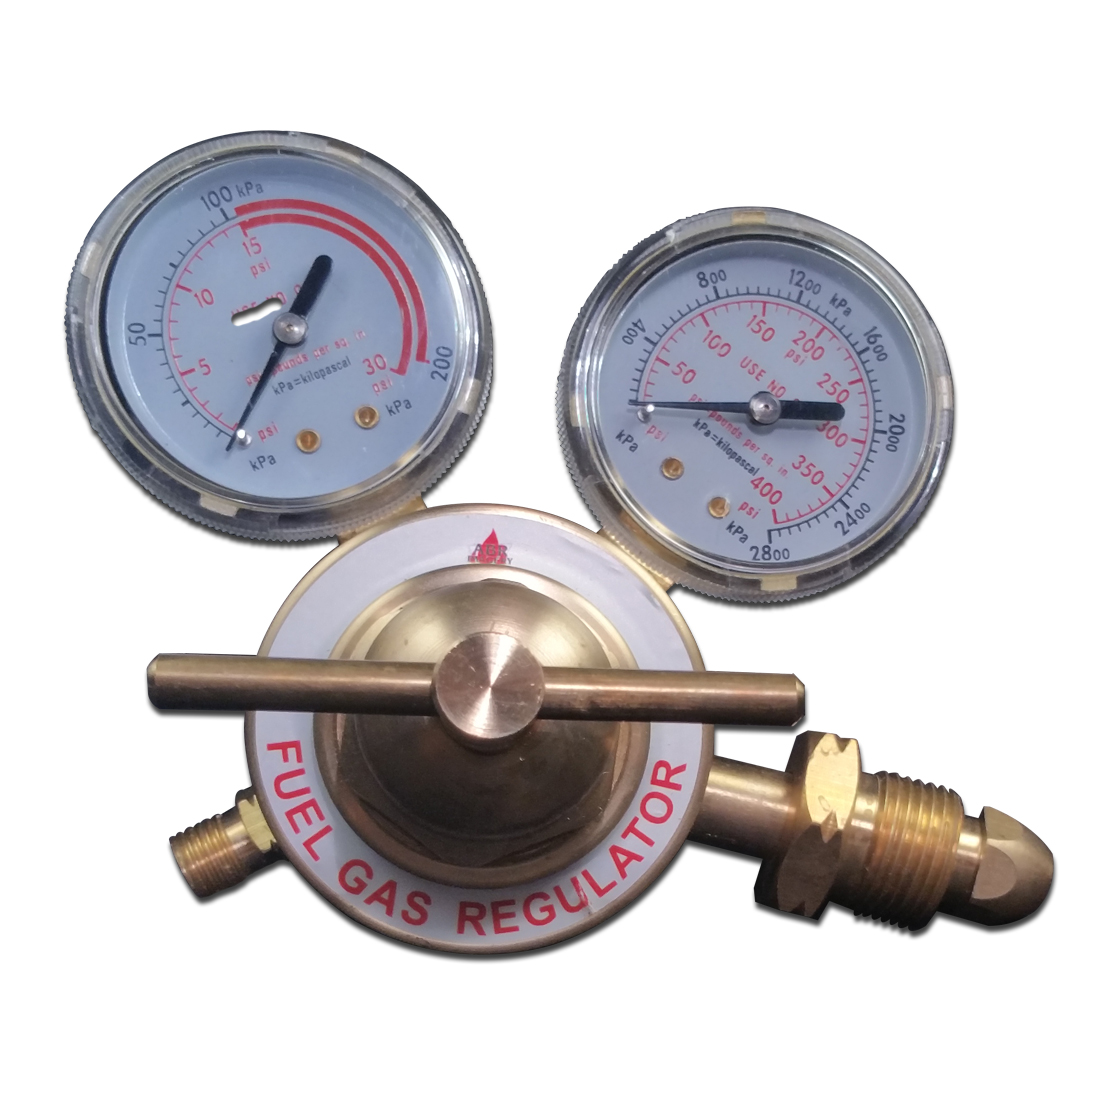 Fuel / Propane Regulator